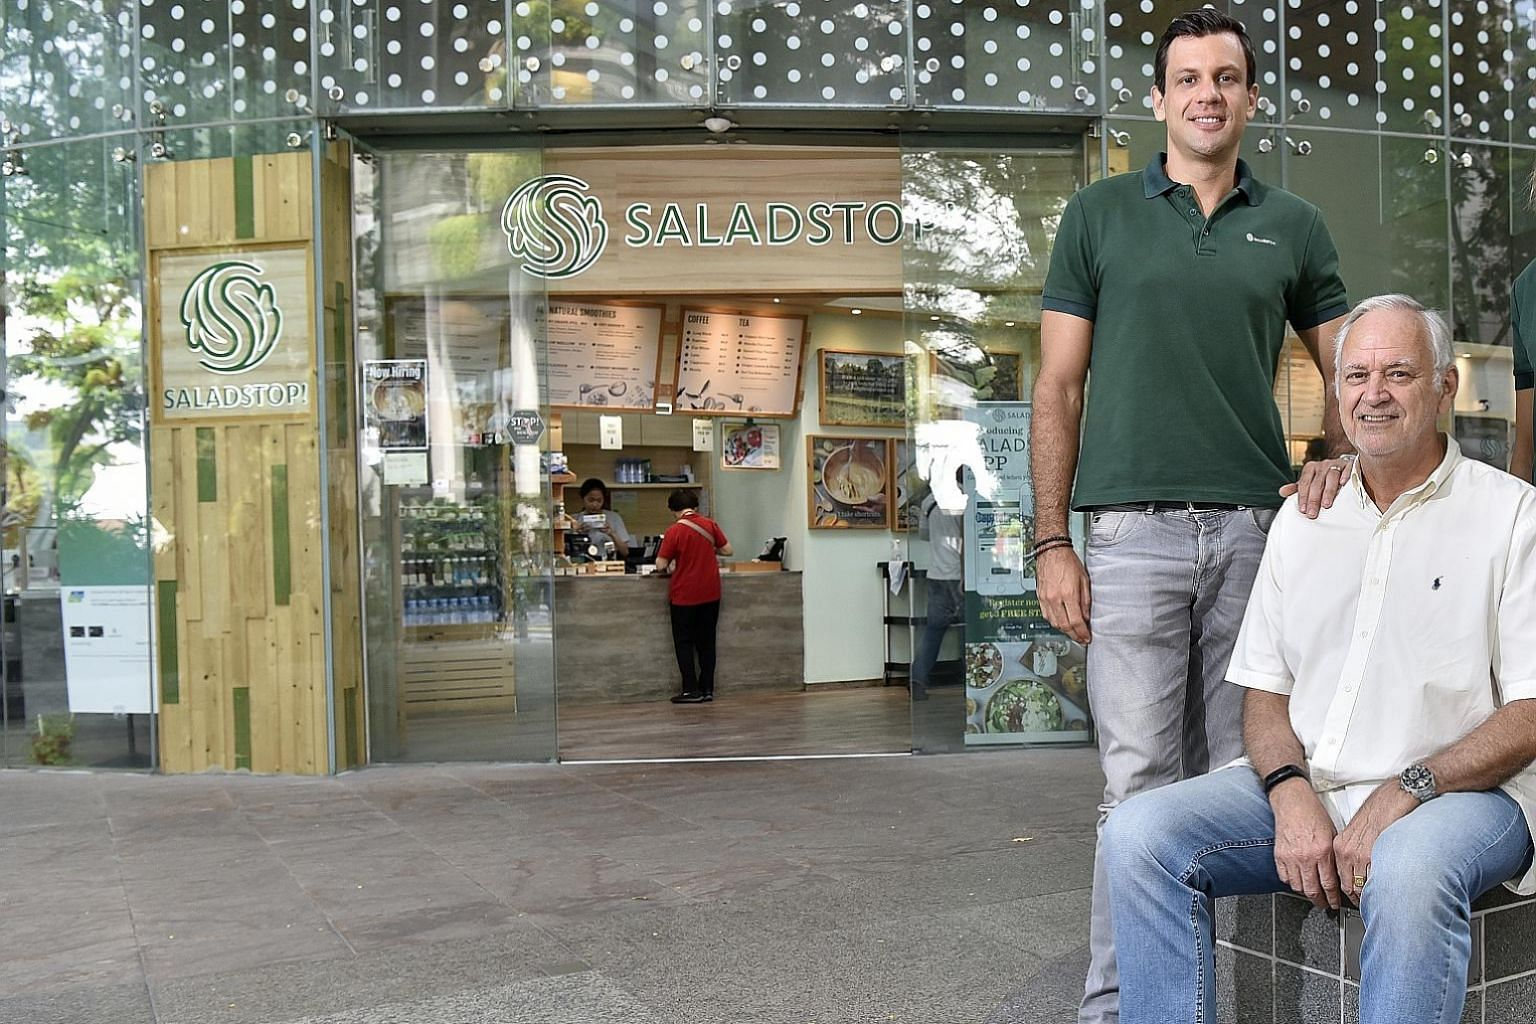 Mr Adrien Desbaillets and his father Daniel want to offer affordable, wholesome and nutritious food.